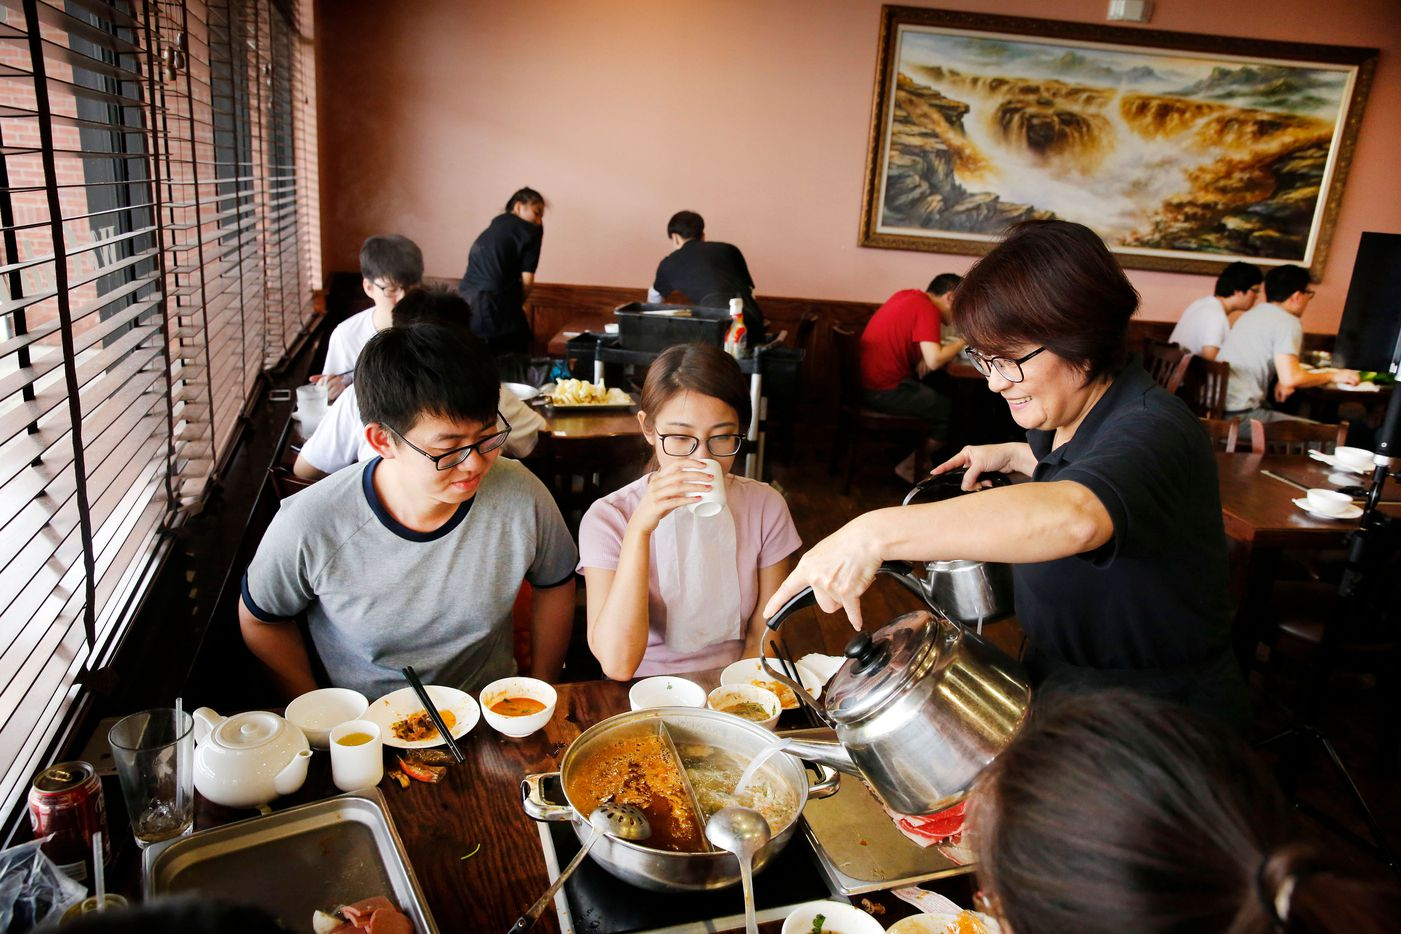 Server Jennifer Ke (right) adds liquid to the hot pot boiling at a table of young diners at Sichuan Folk in Plano. (Tom Fox/Staff Photographer)